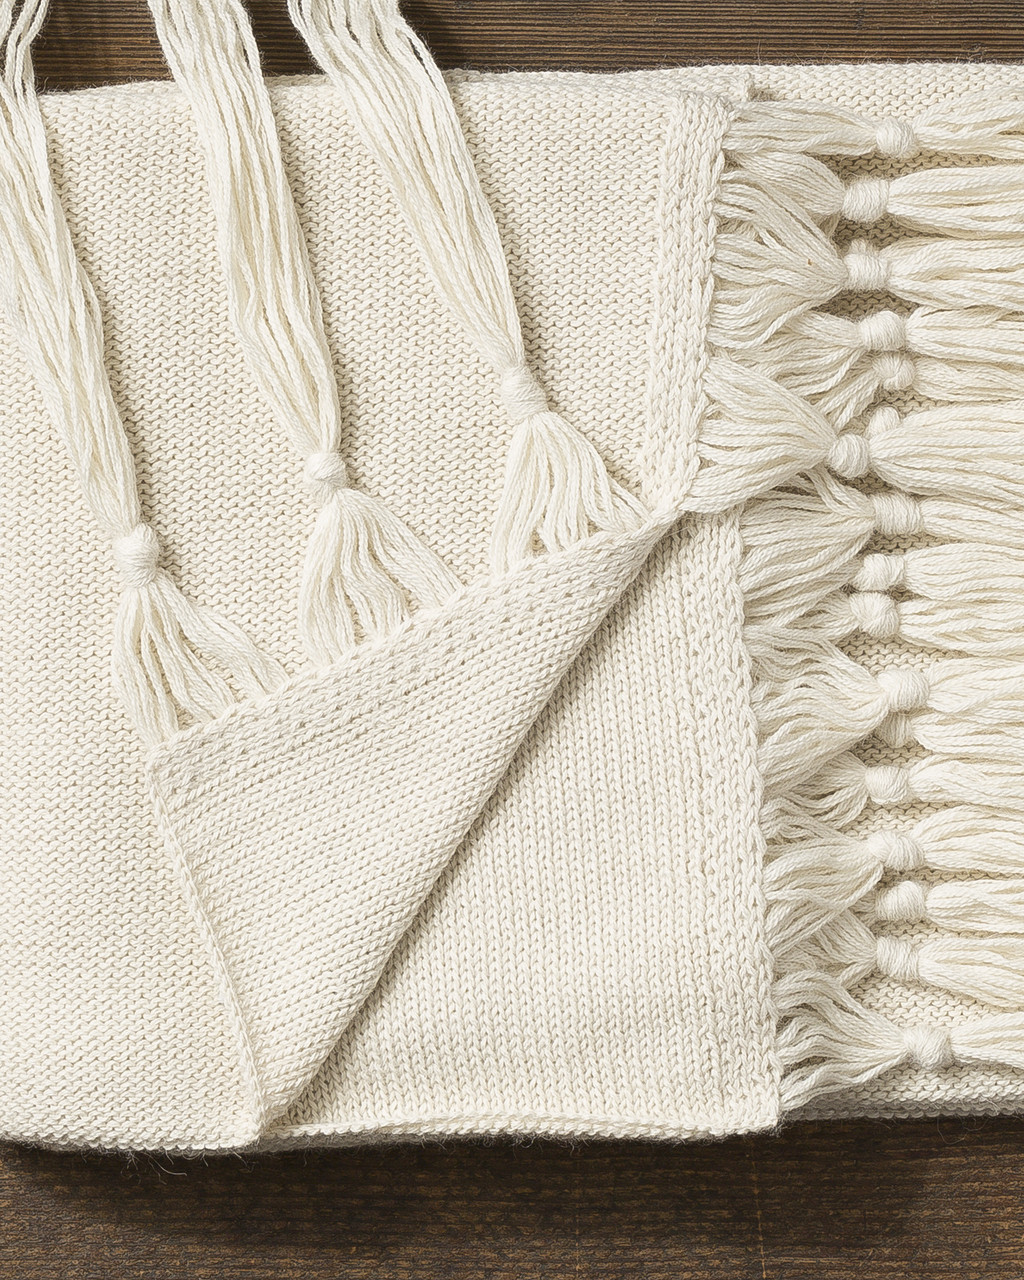 Alicia Adams Alpaca Cayman Throw, open weave alpaca throw blanket with tassels, alpaca throw, alpaca vs cashmere, ivory tan fringed alpaca throw